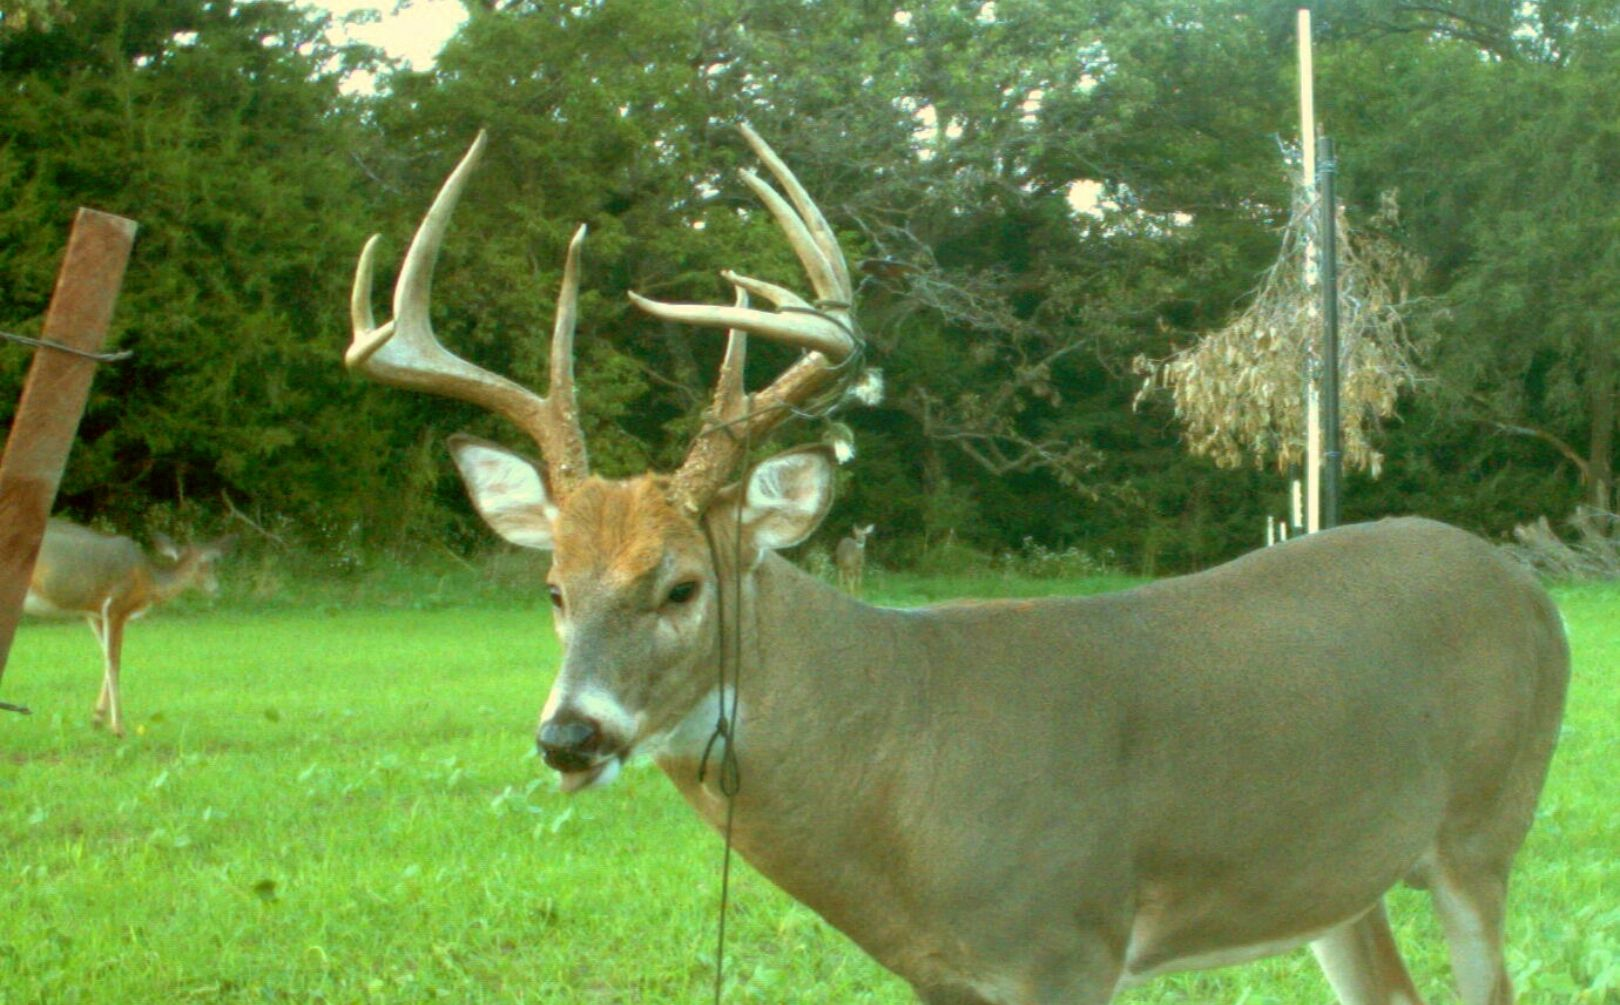 How To Build A Better Deer Trap